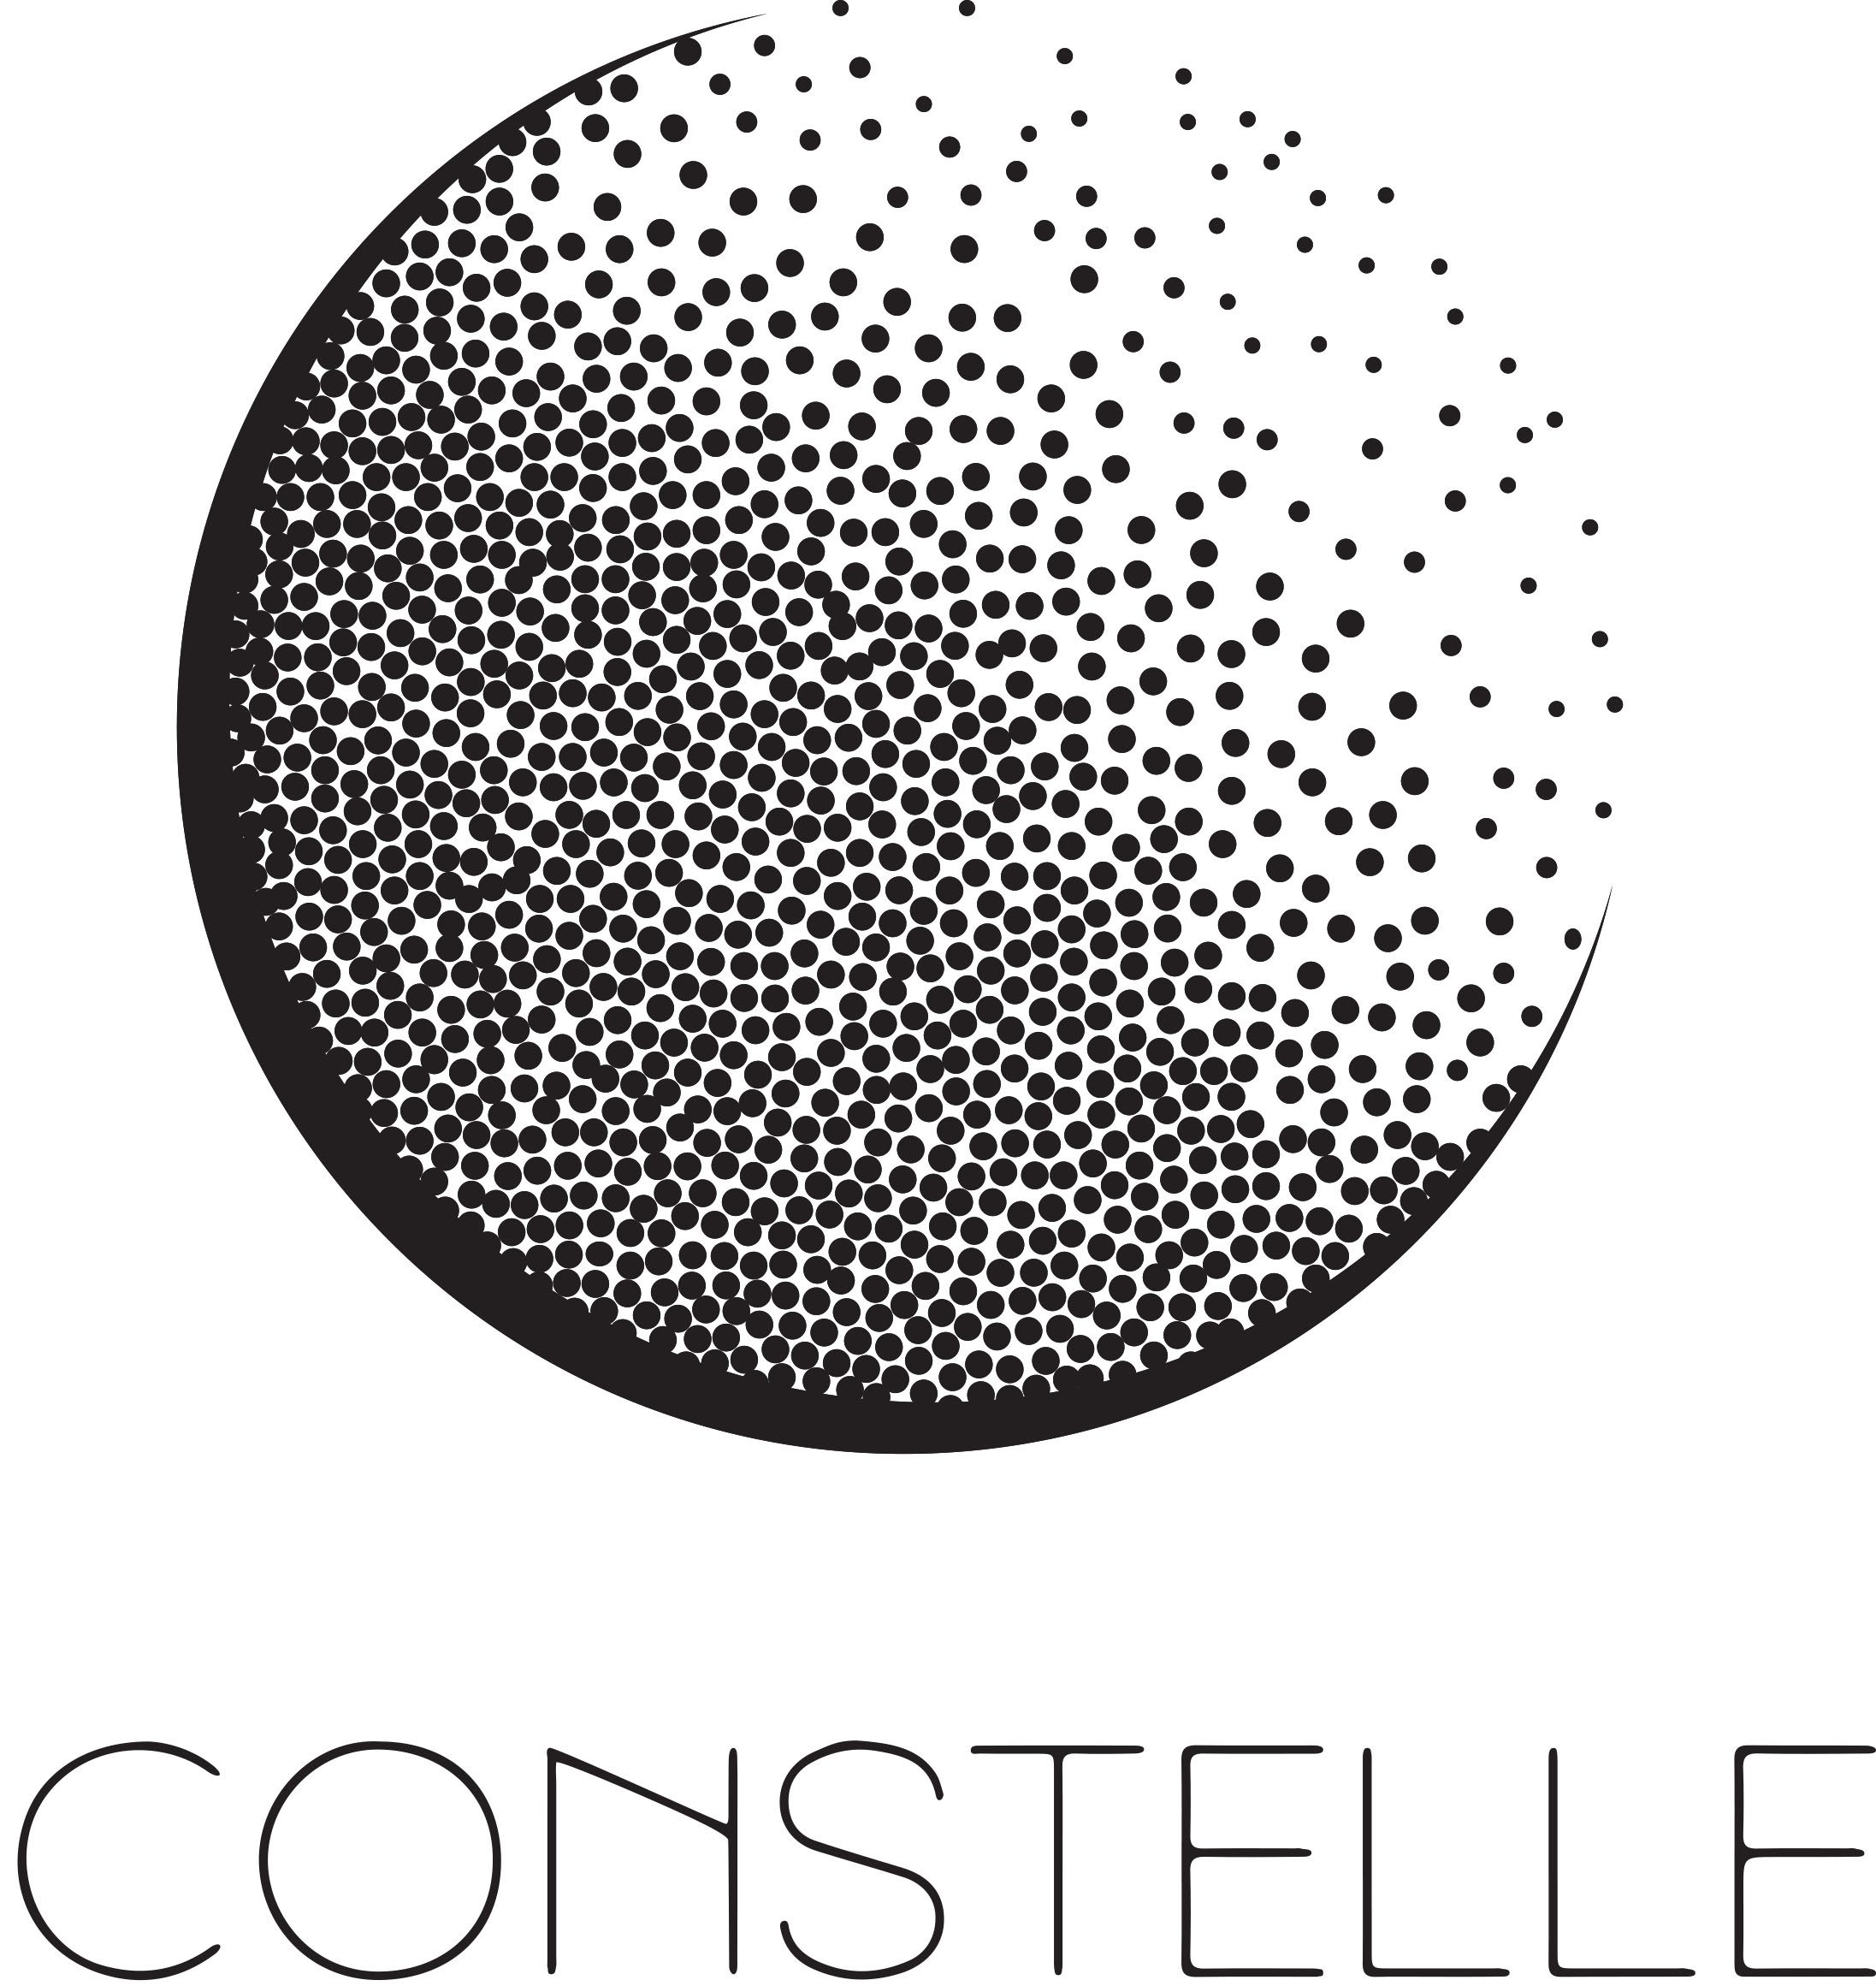 LOGO CONSTELLE VERSION FULL